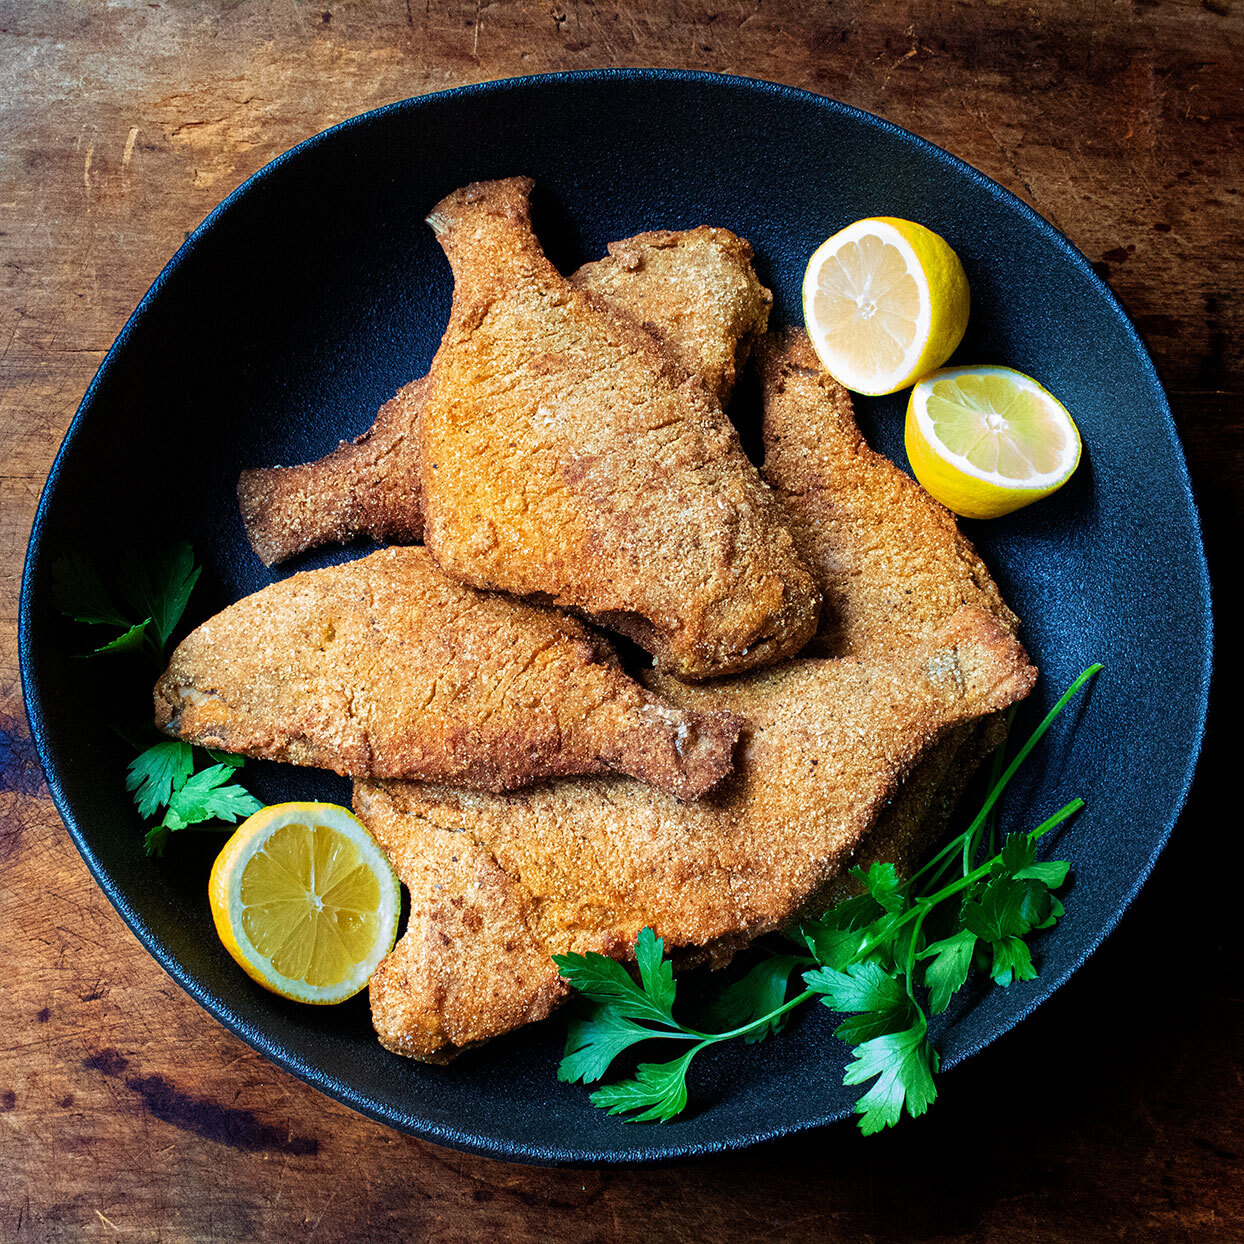 fried fish with lemon slices in a black bowl